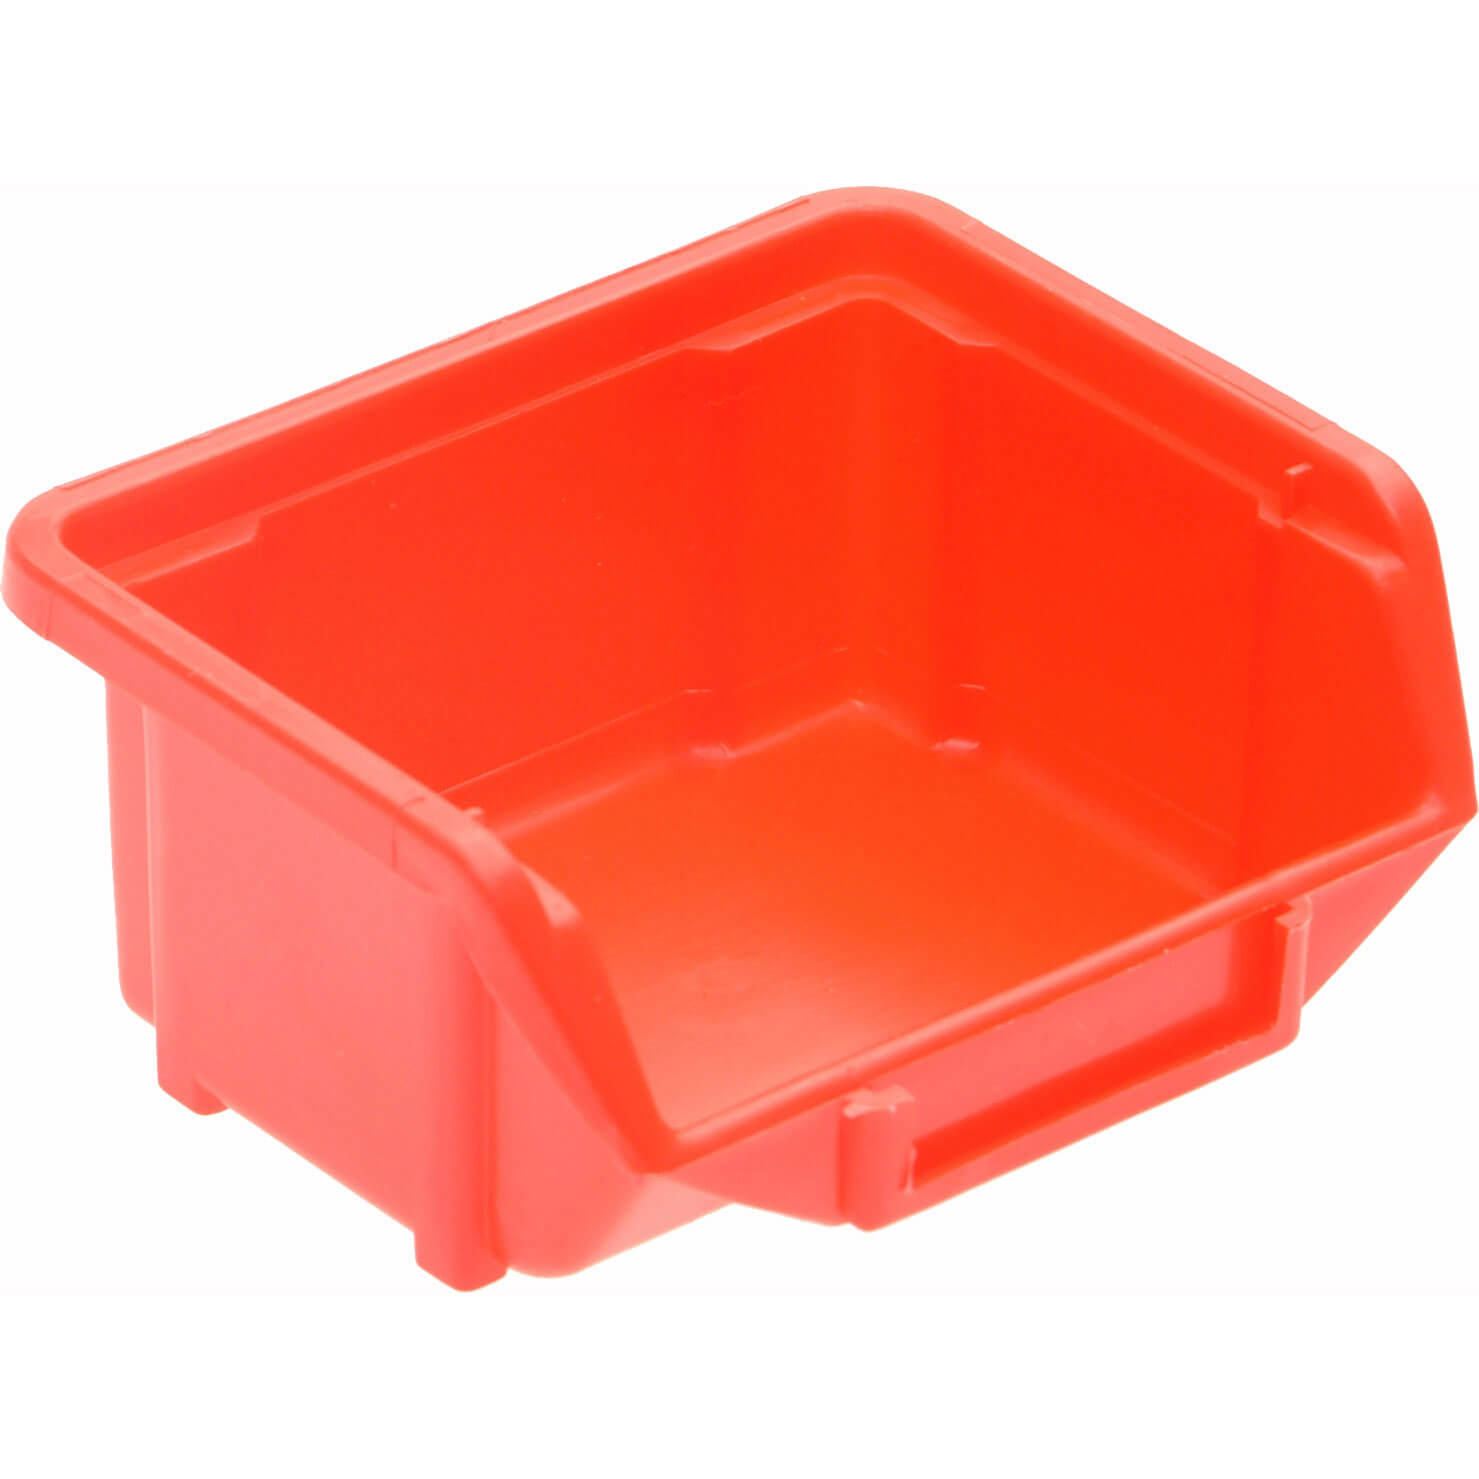 Terry Te110 Red Ecobox W109 x D100 x H53mm